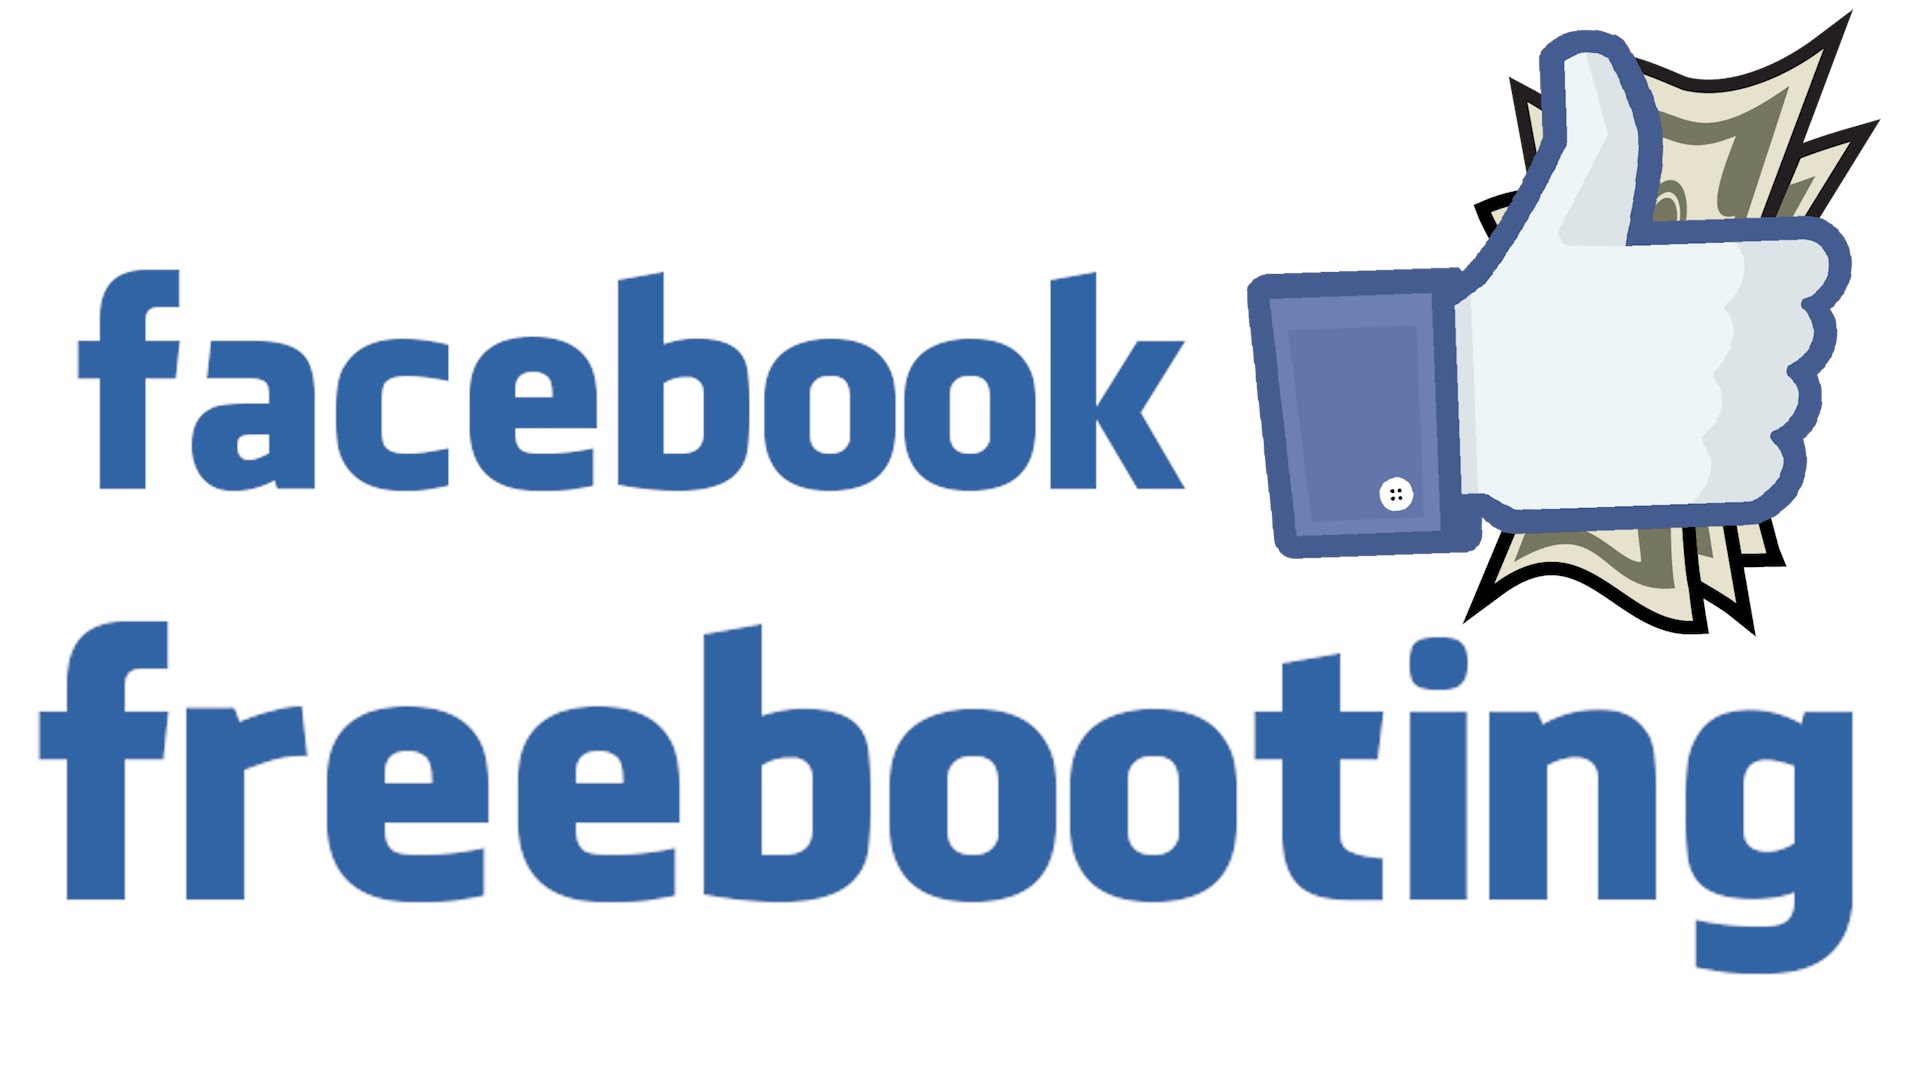 Facebook Freebooting